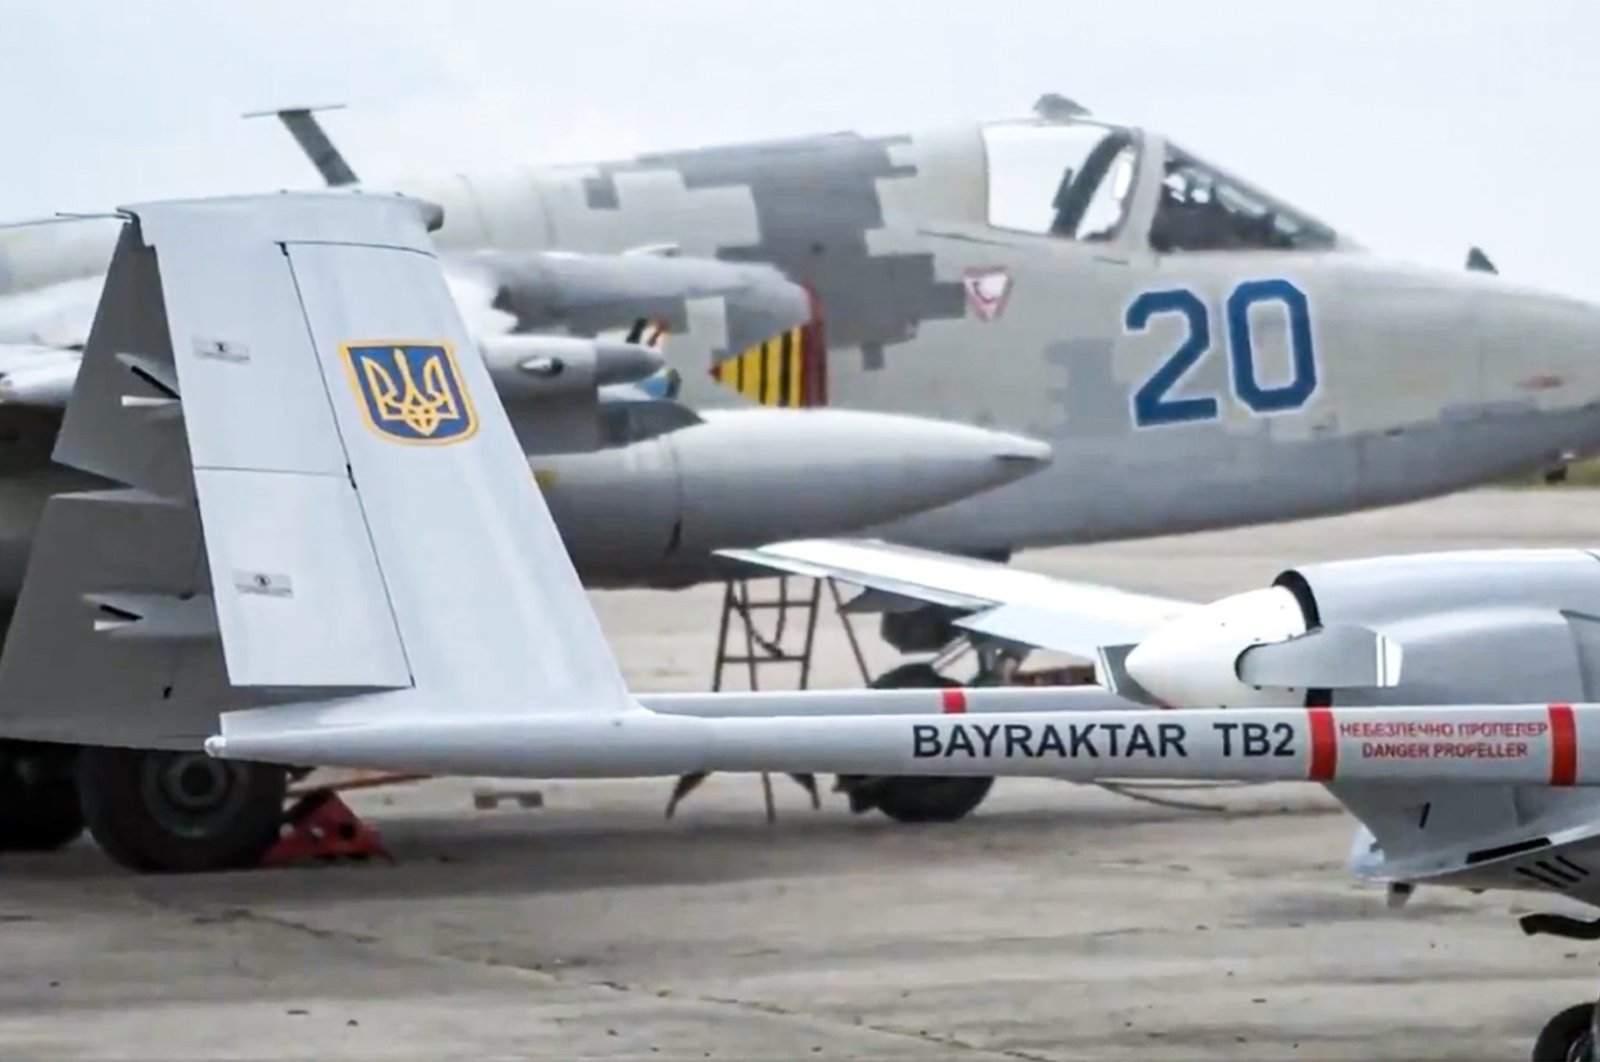 A screengrab shows a Bayraktar TB2 UCAV that belongs to the Ukrainian army during the Sea Breeze military exercise in the Black Sea, June 30, 2021.